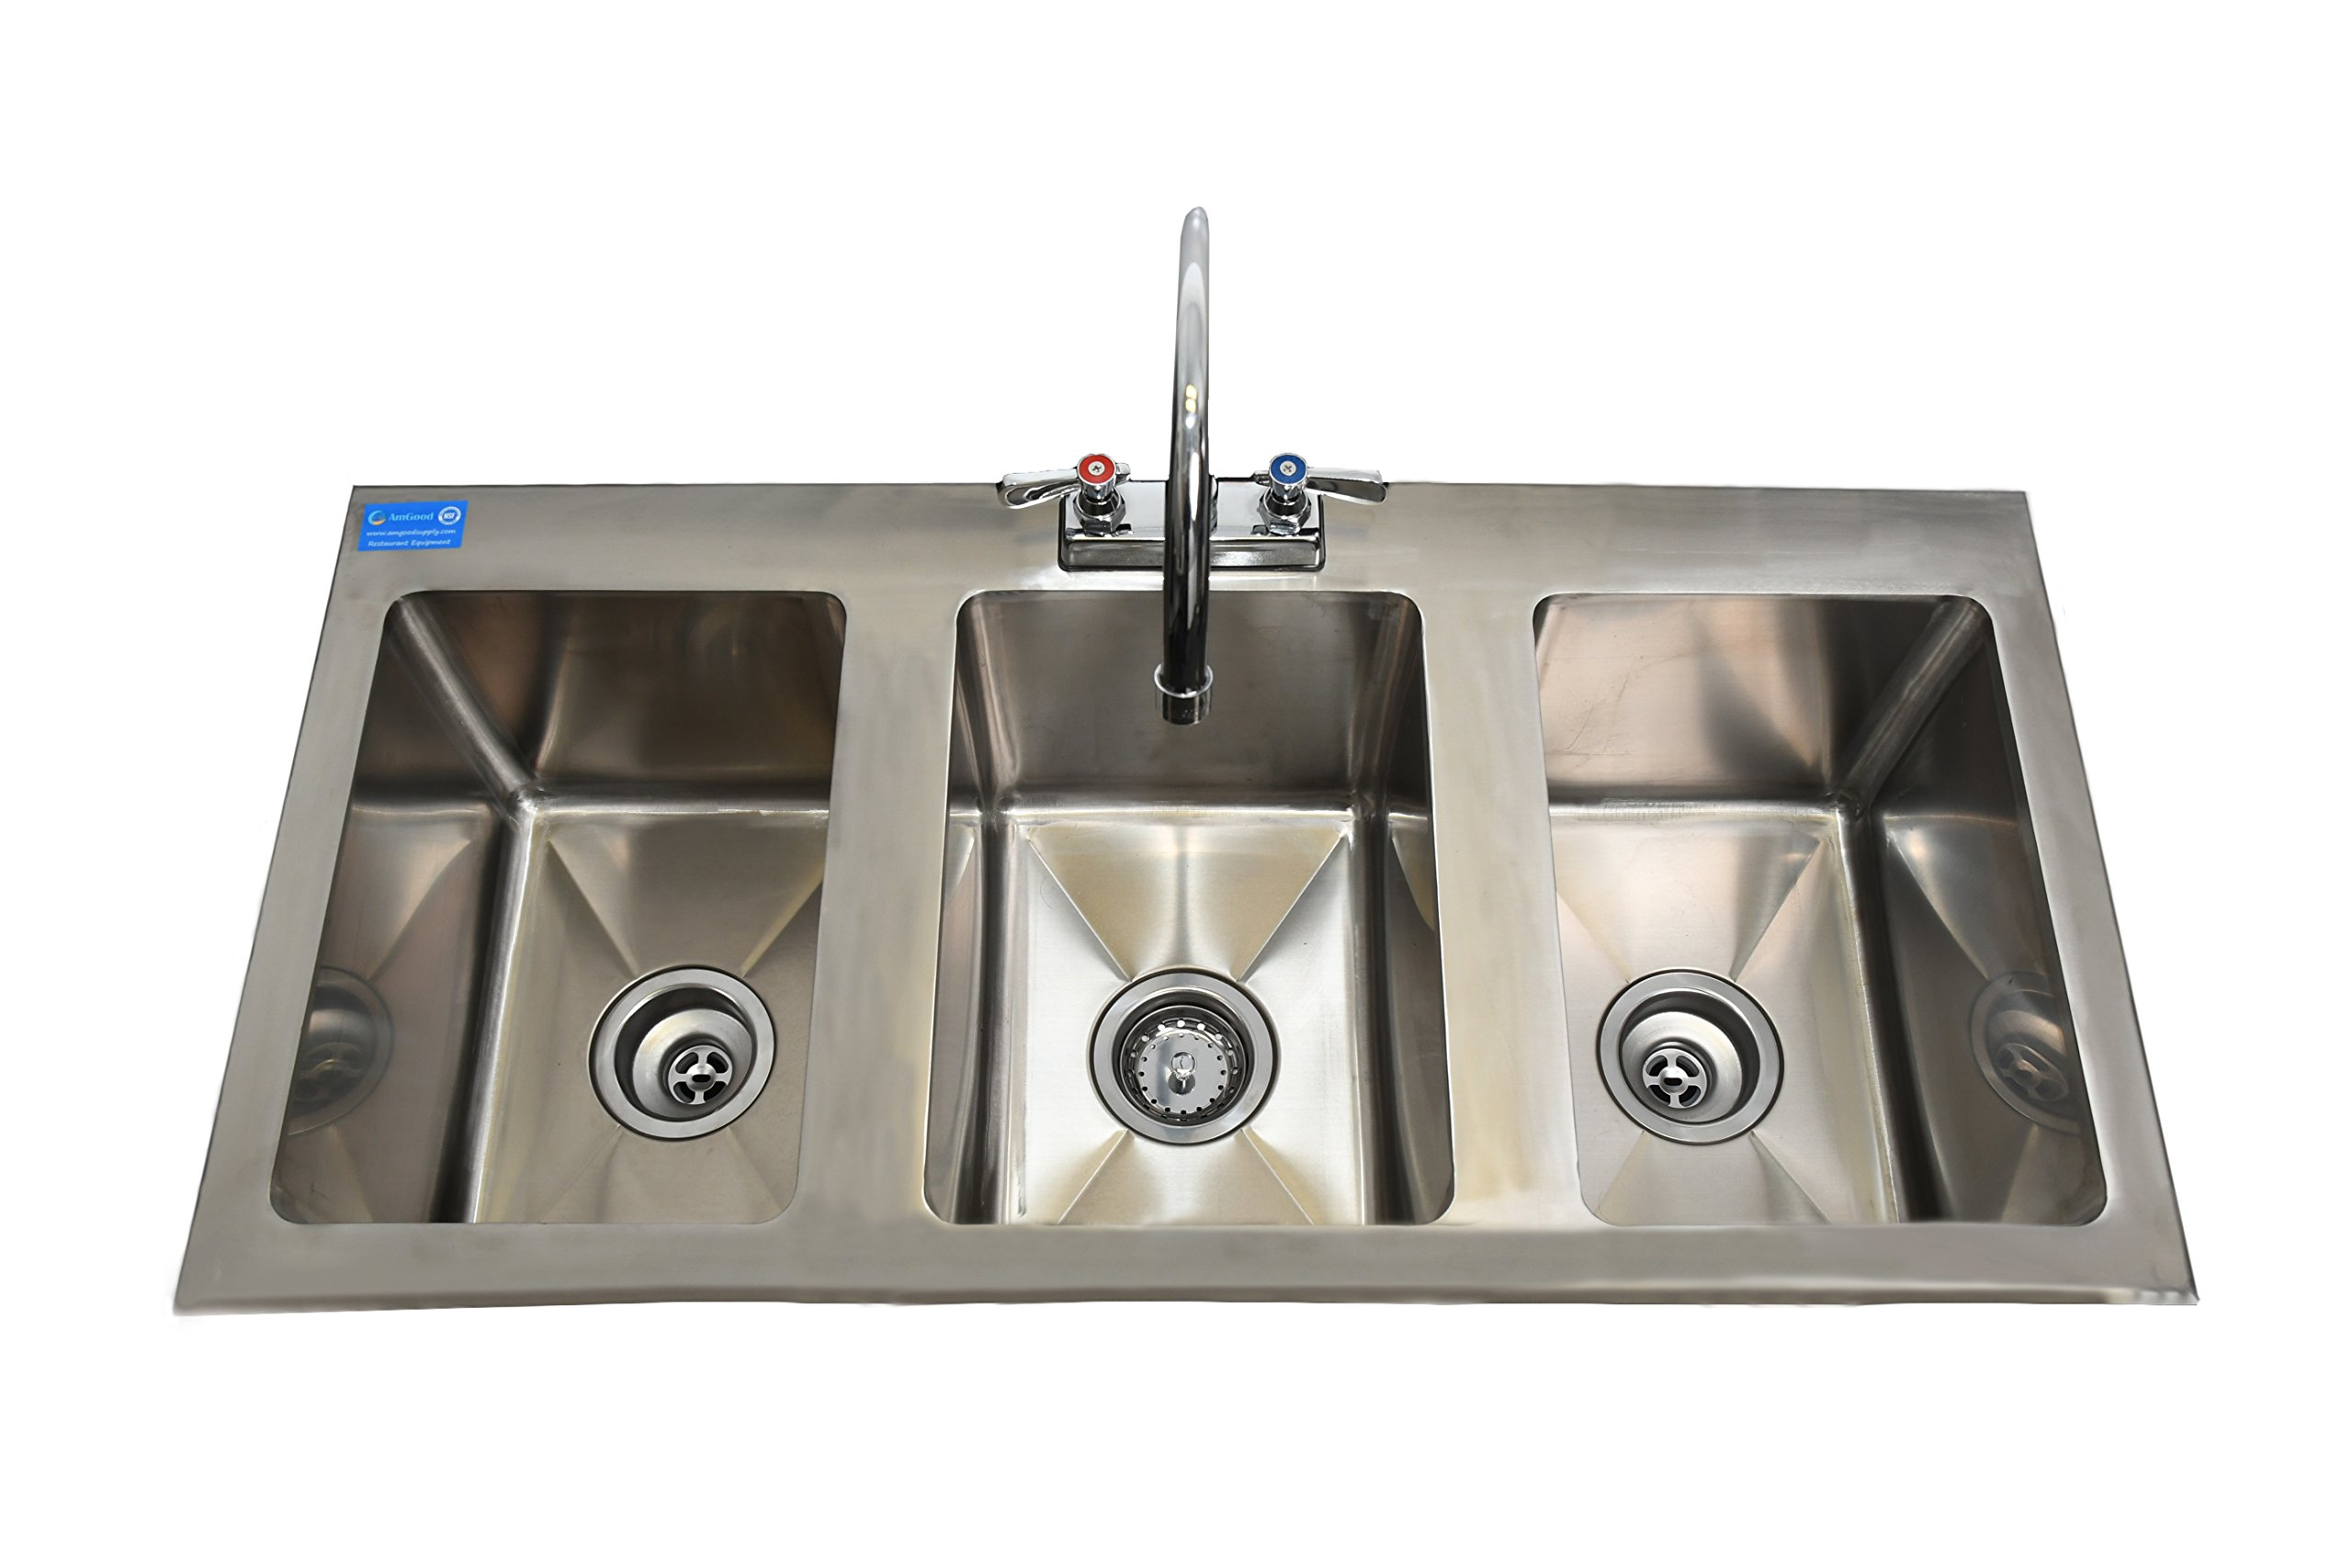 AmGood Stainless Steel Drop Sink - 3 Compartment Drop In Sink 10''x14''x10'' NSF Certified (10'' x 14'' x 10'' Sink with Faucet)